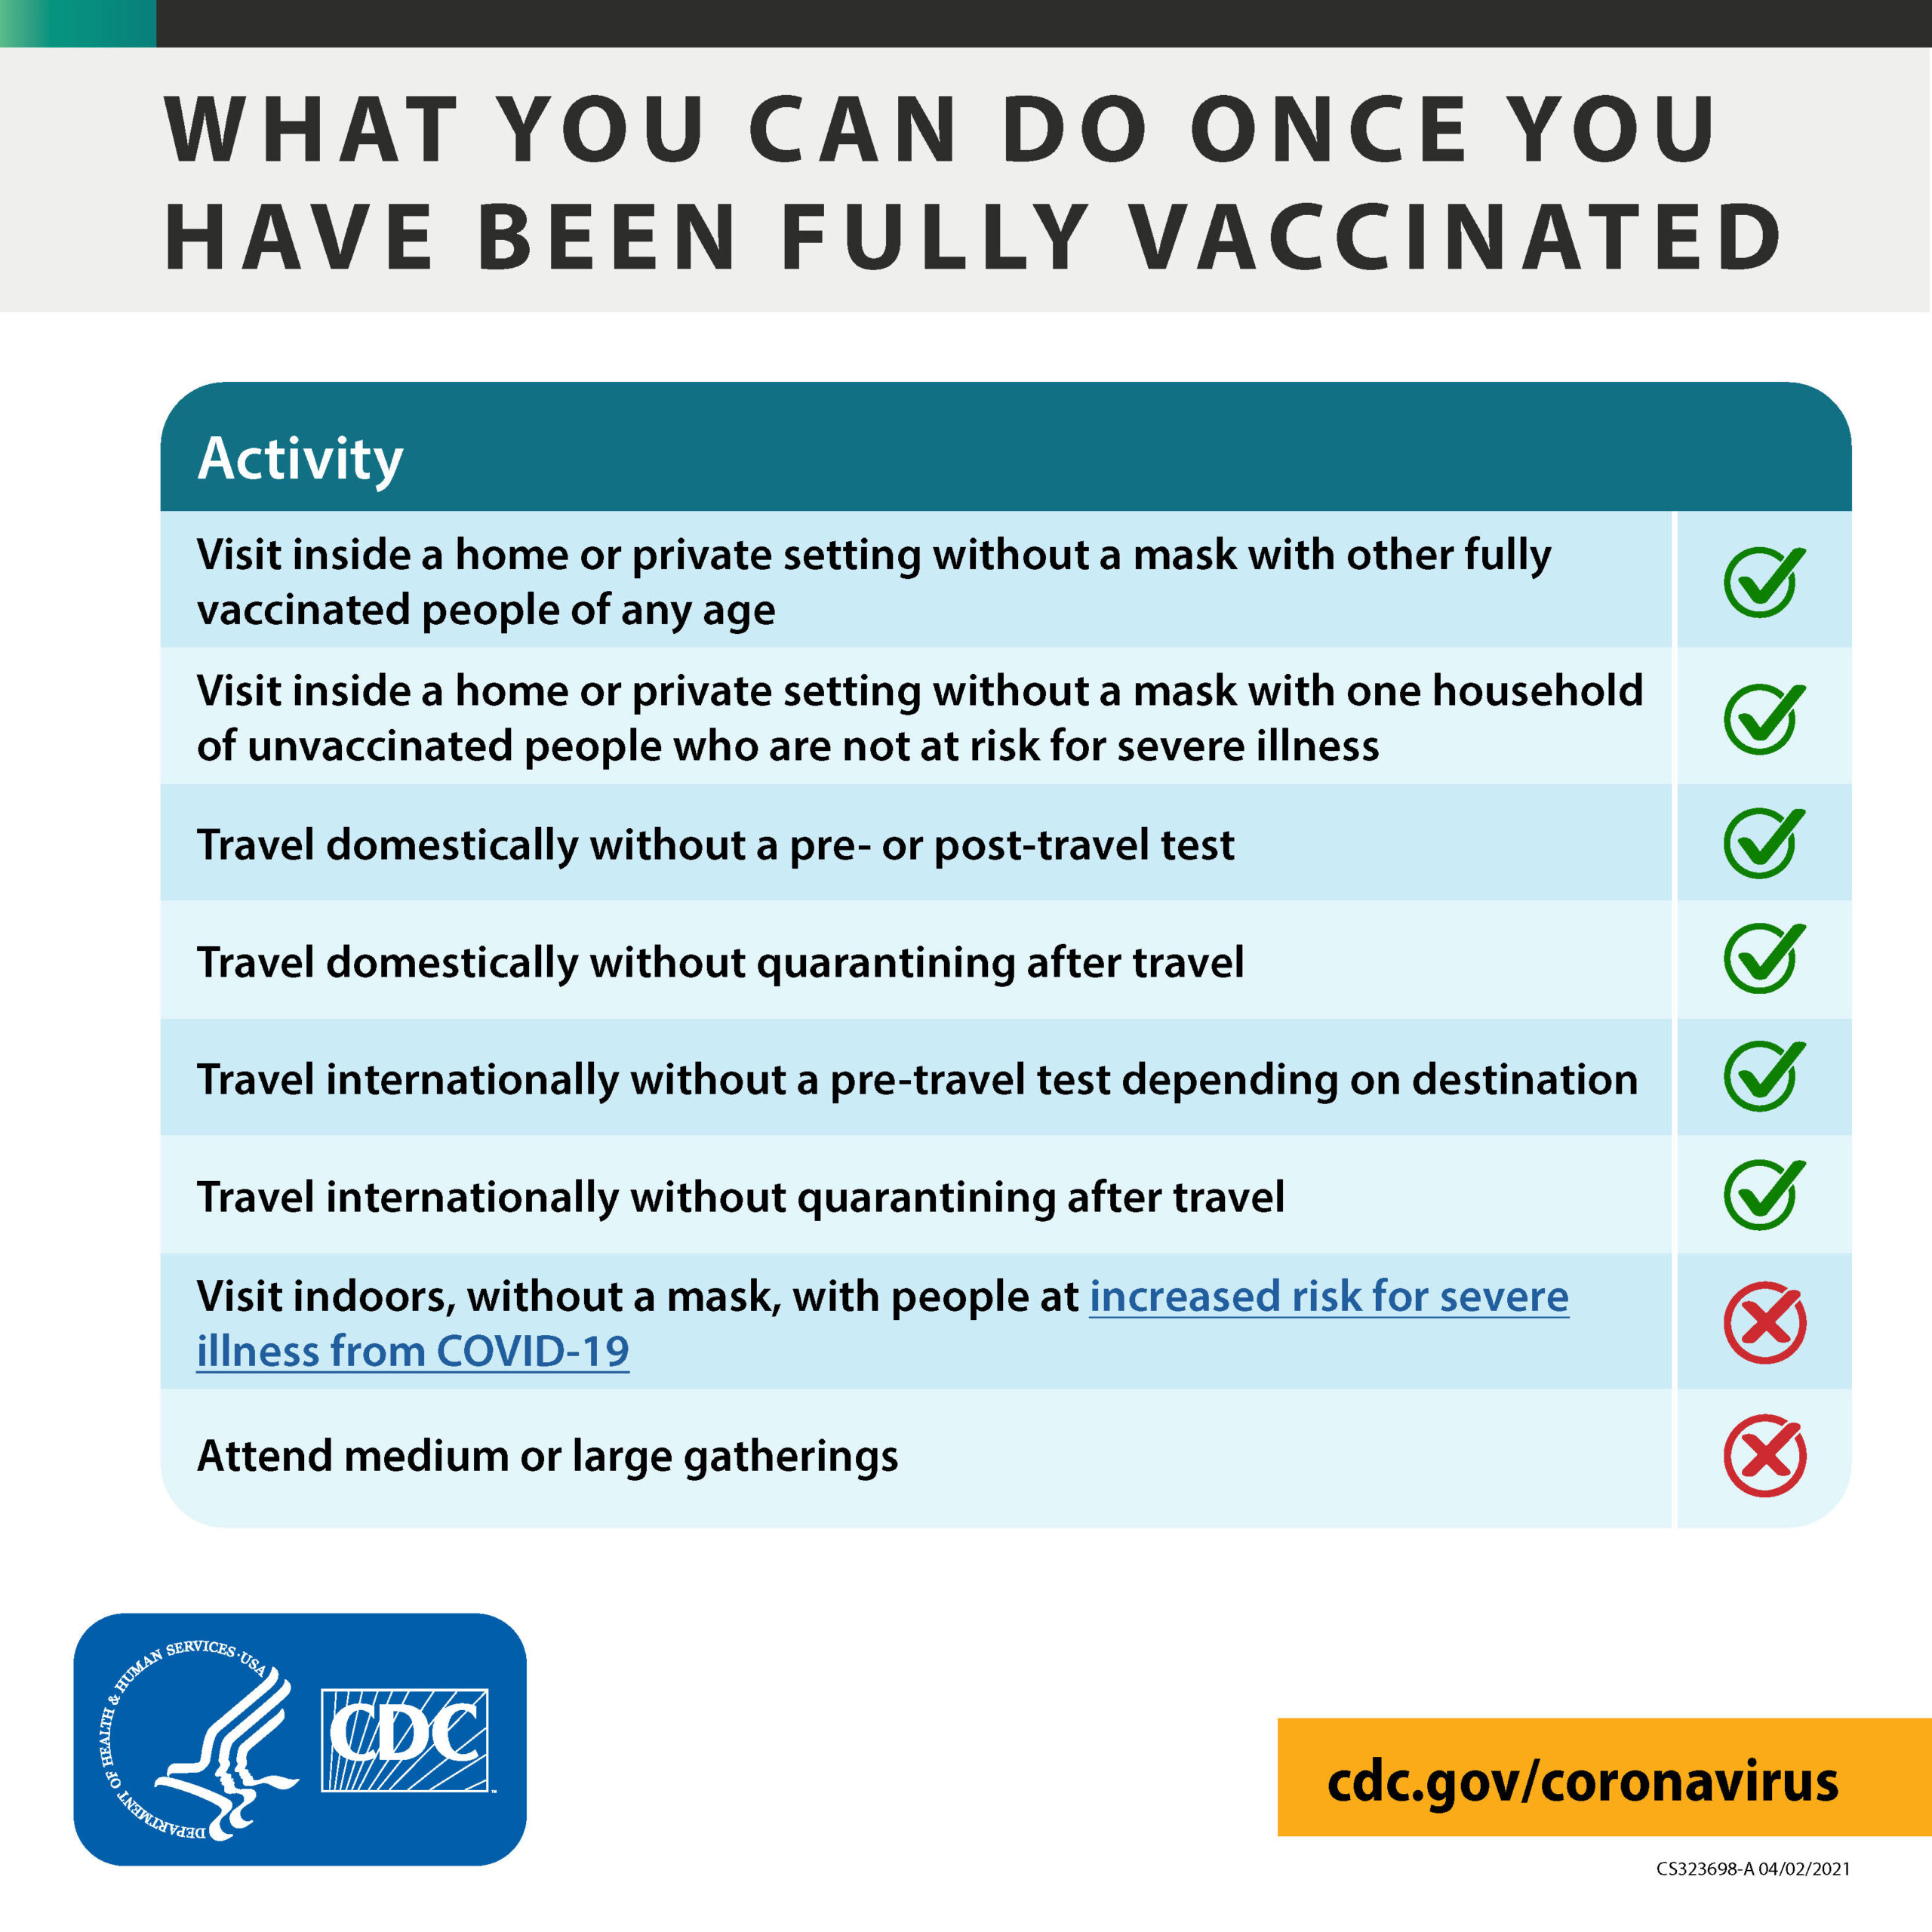 what you can do after vaccinated